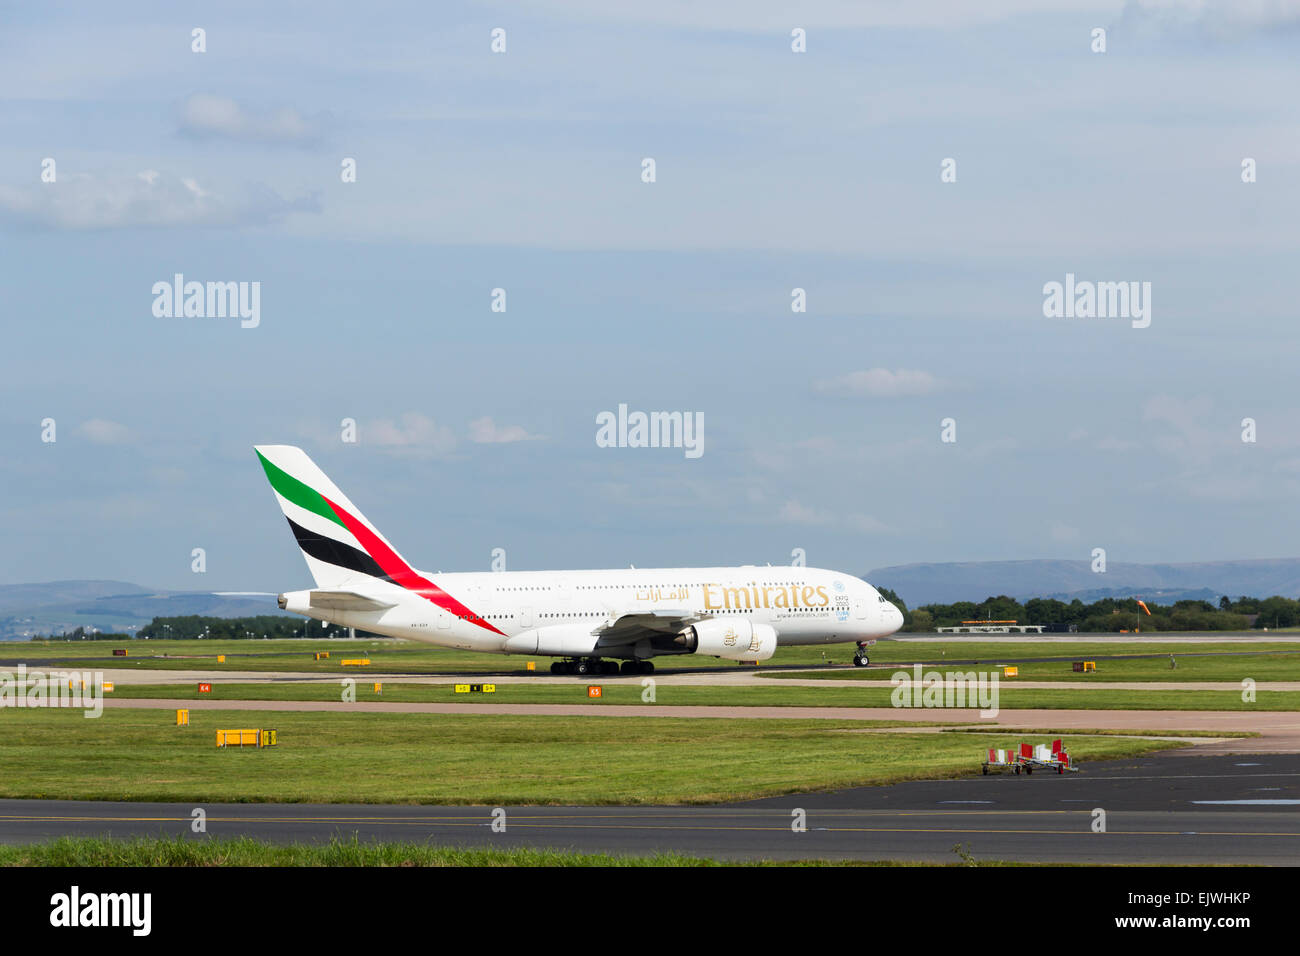 Emirates Airbus A380  aircraft taxiing towards the take-off runway at Manchester airport for  the flight to Dubai. - Stock Image